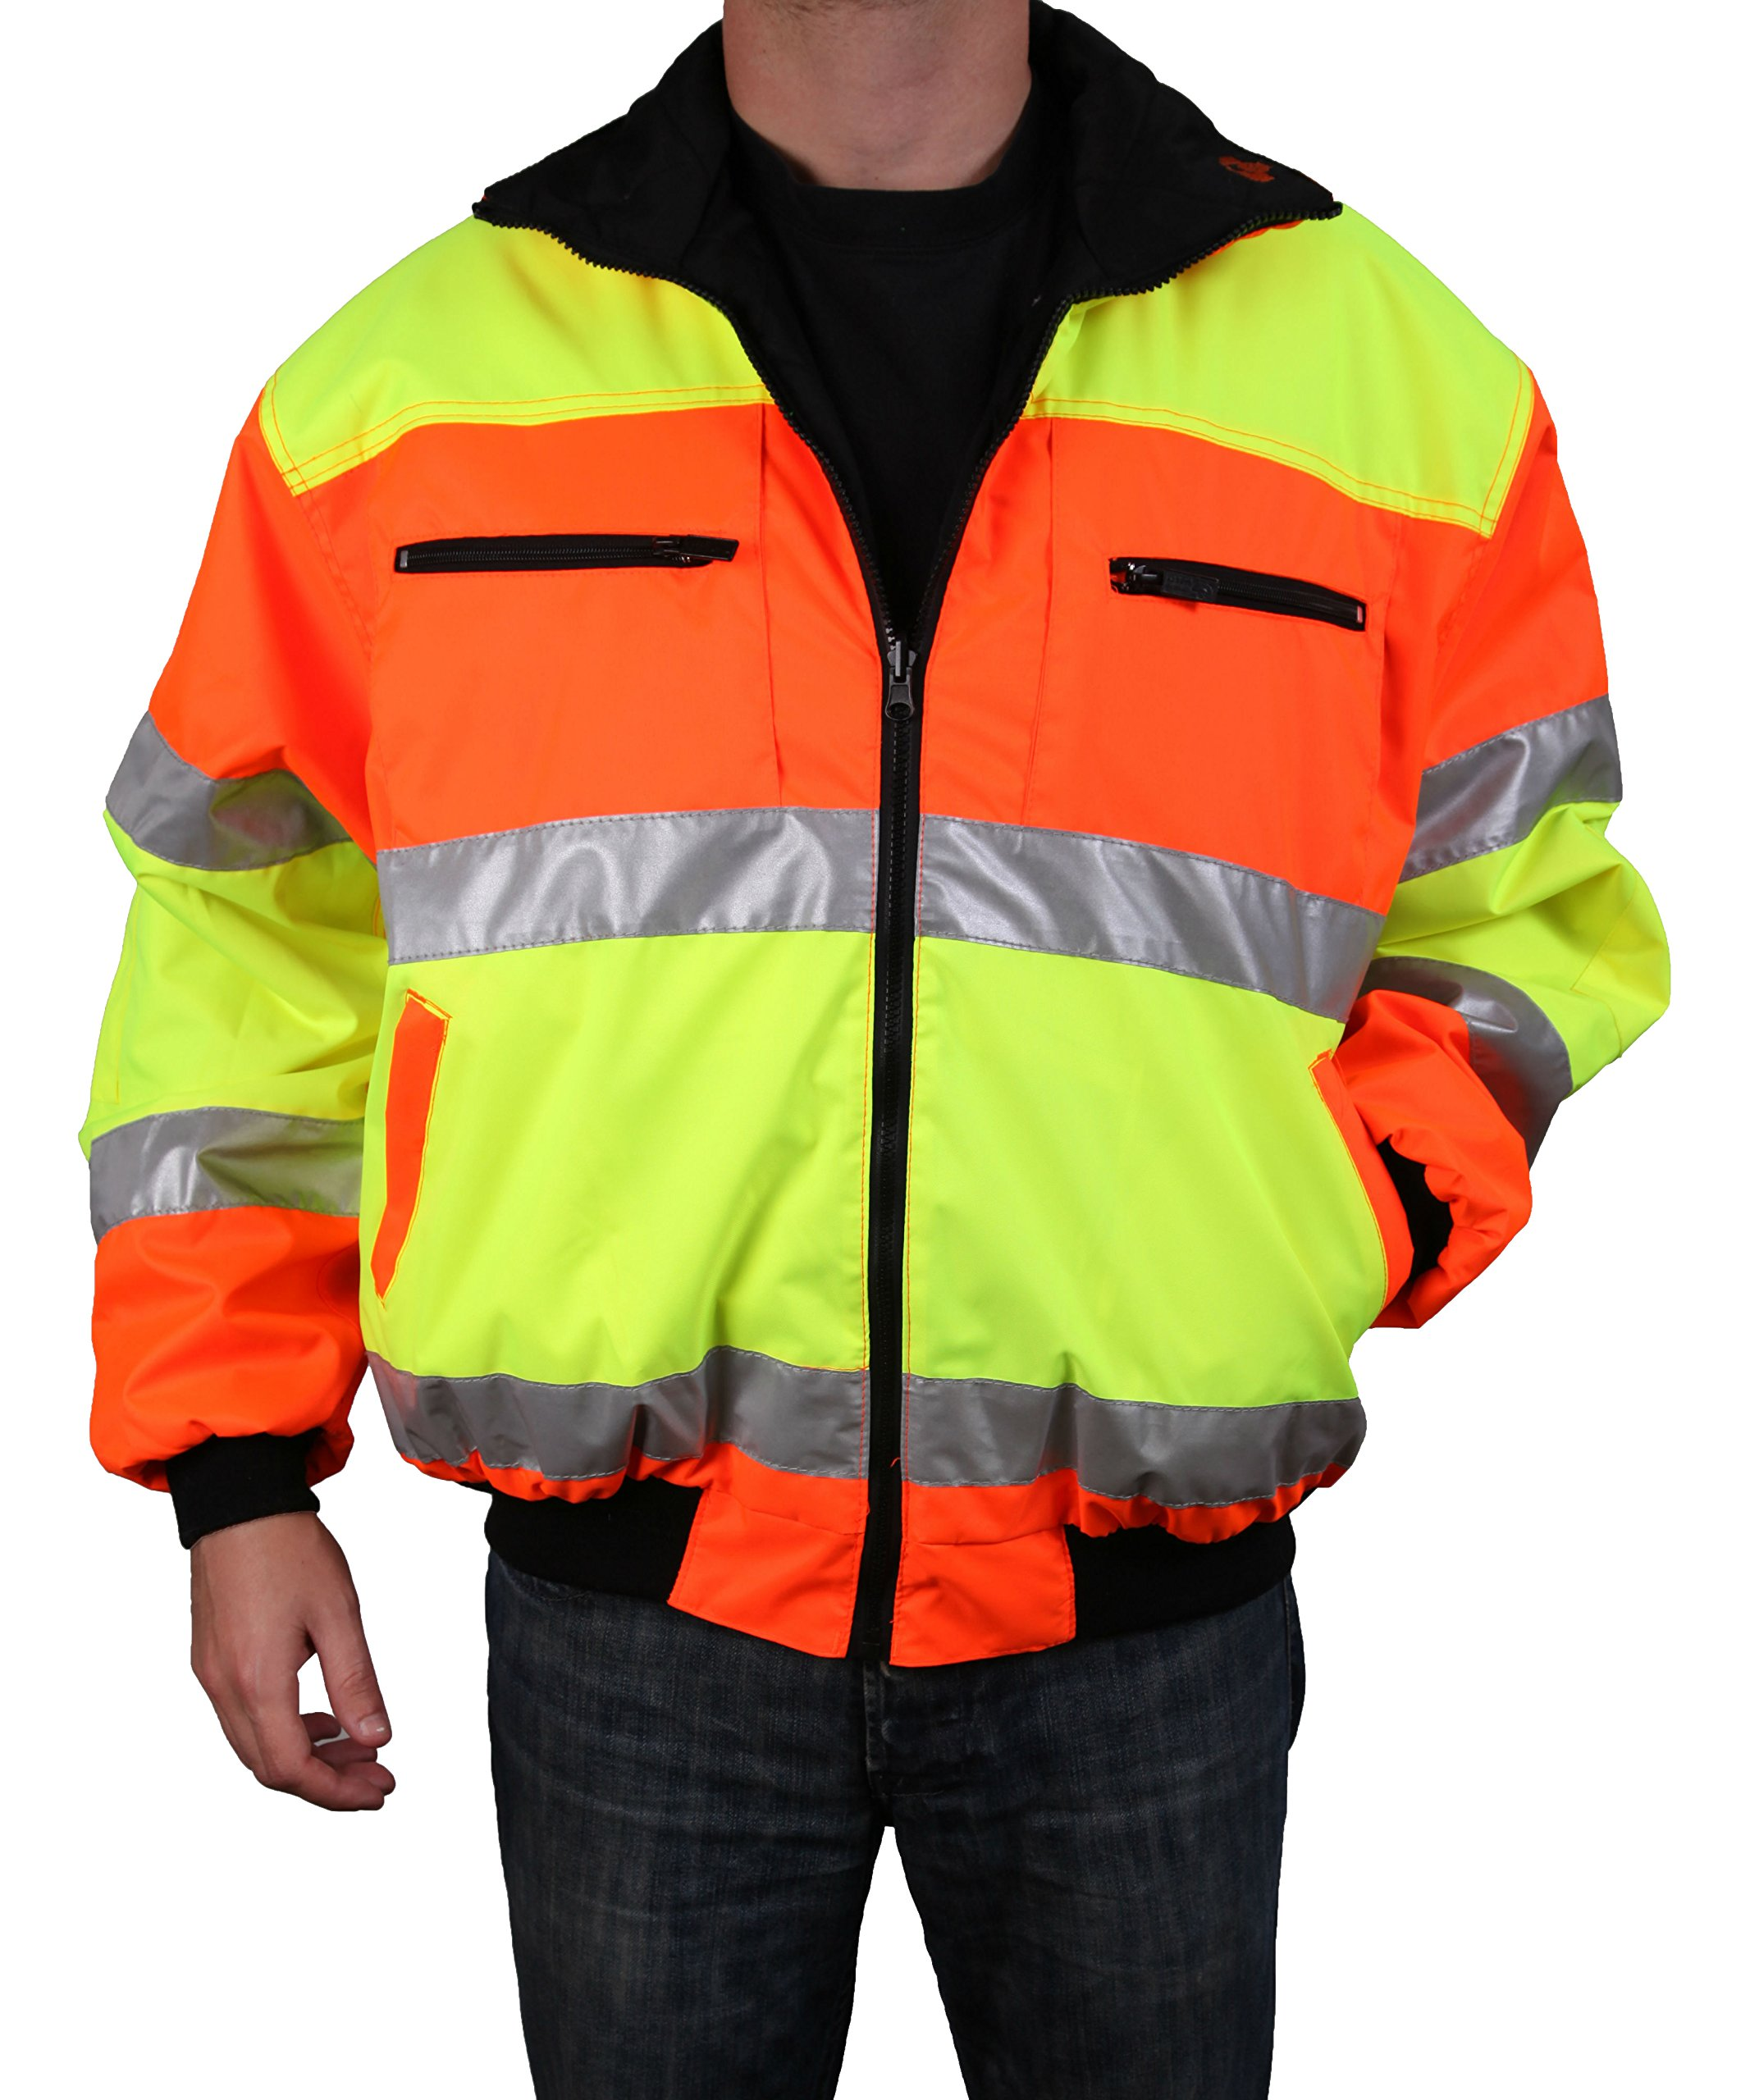 Safety Depot Cold Climate Safety Jacket ANSI Approved Class 3, Reversible, Water Resistant with Pockets (Large) by Safety Depot (Image #1)